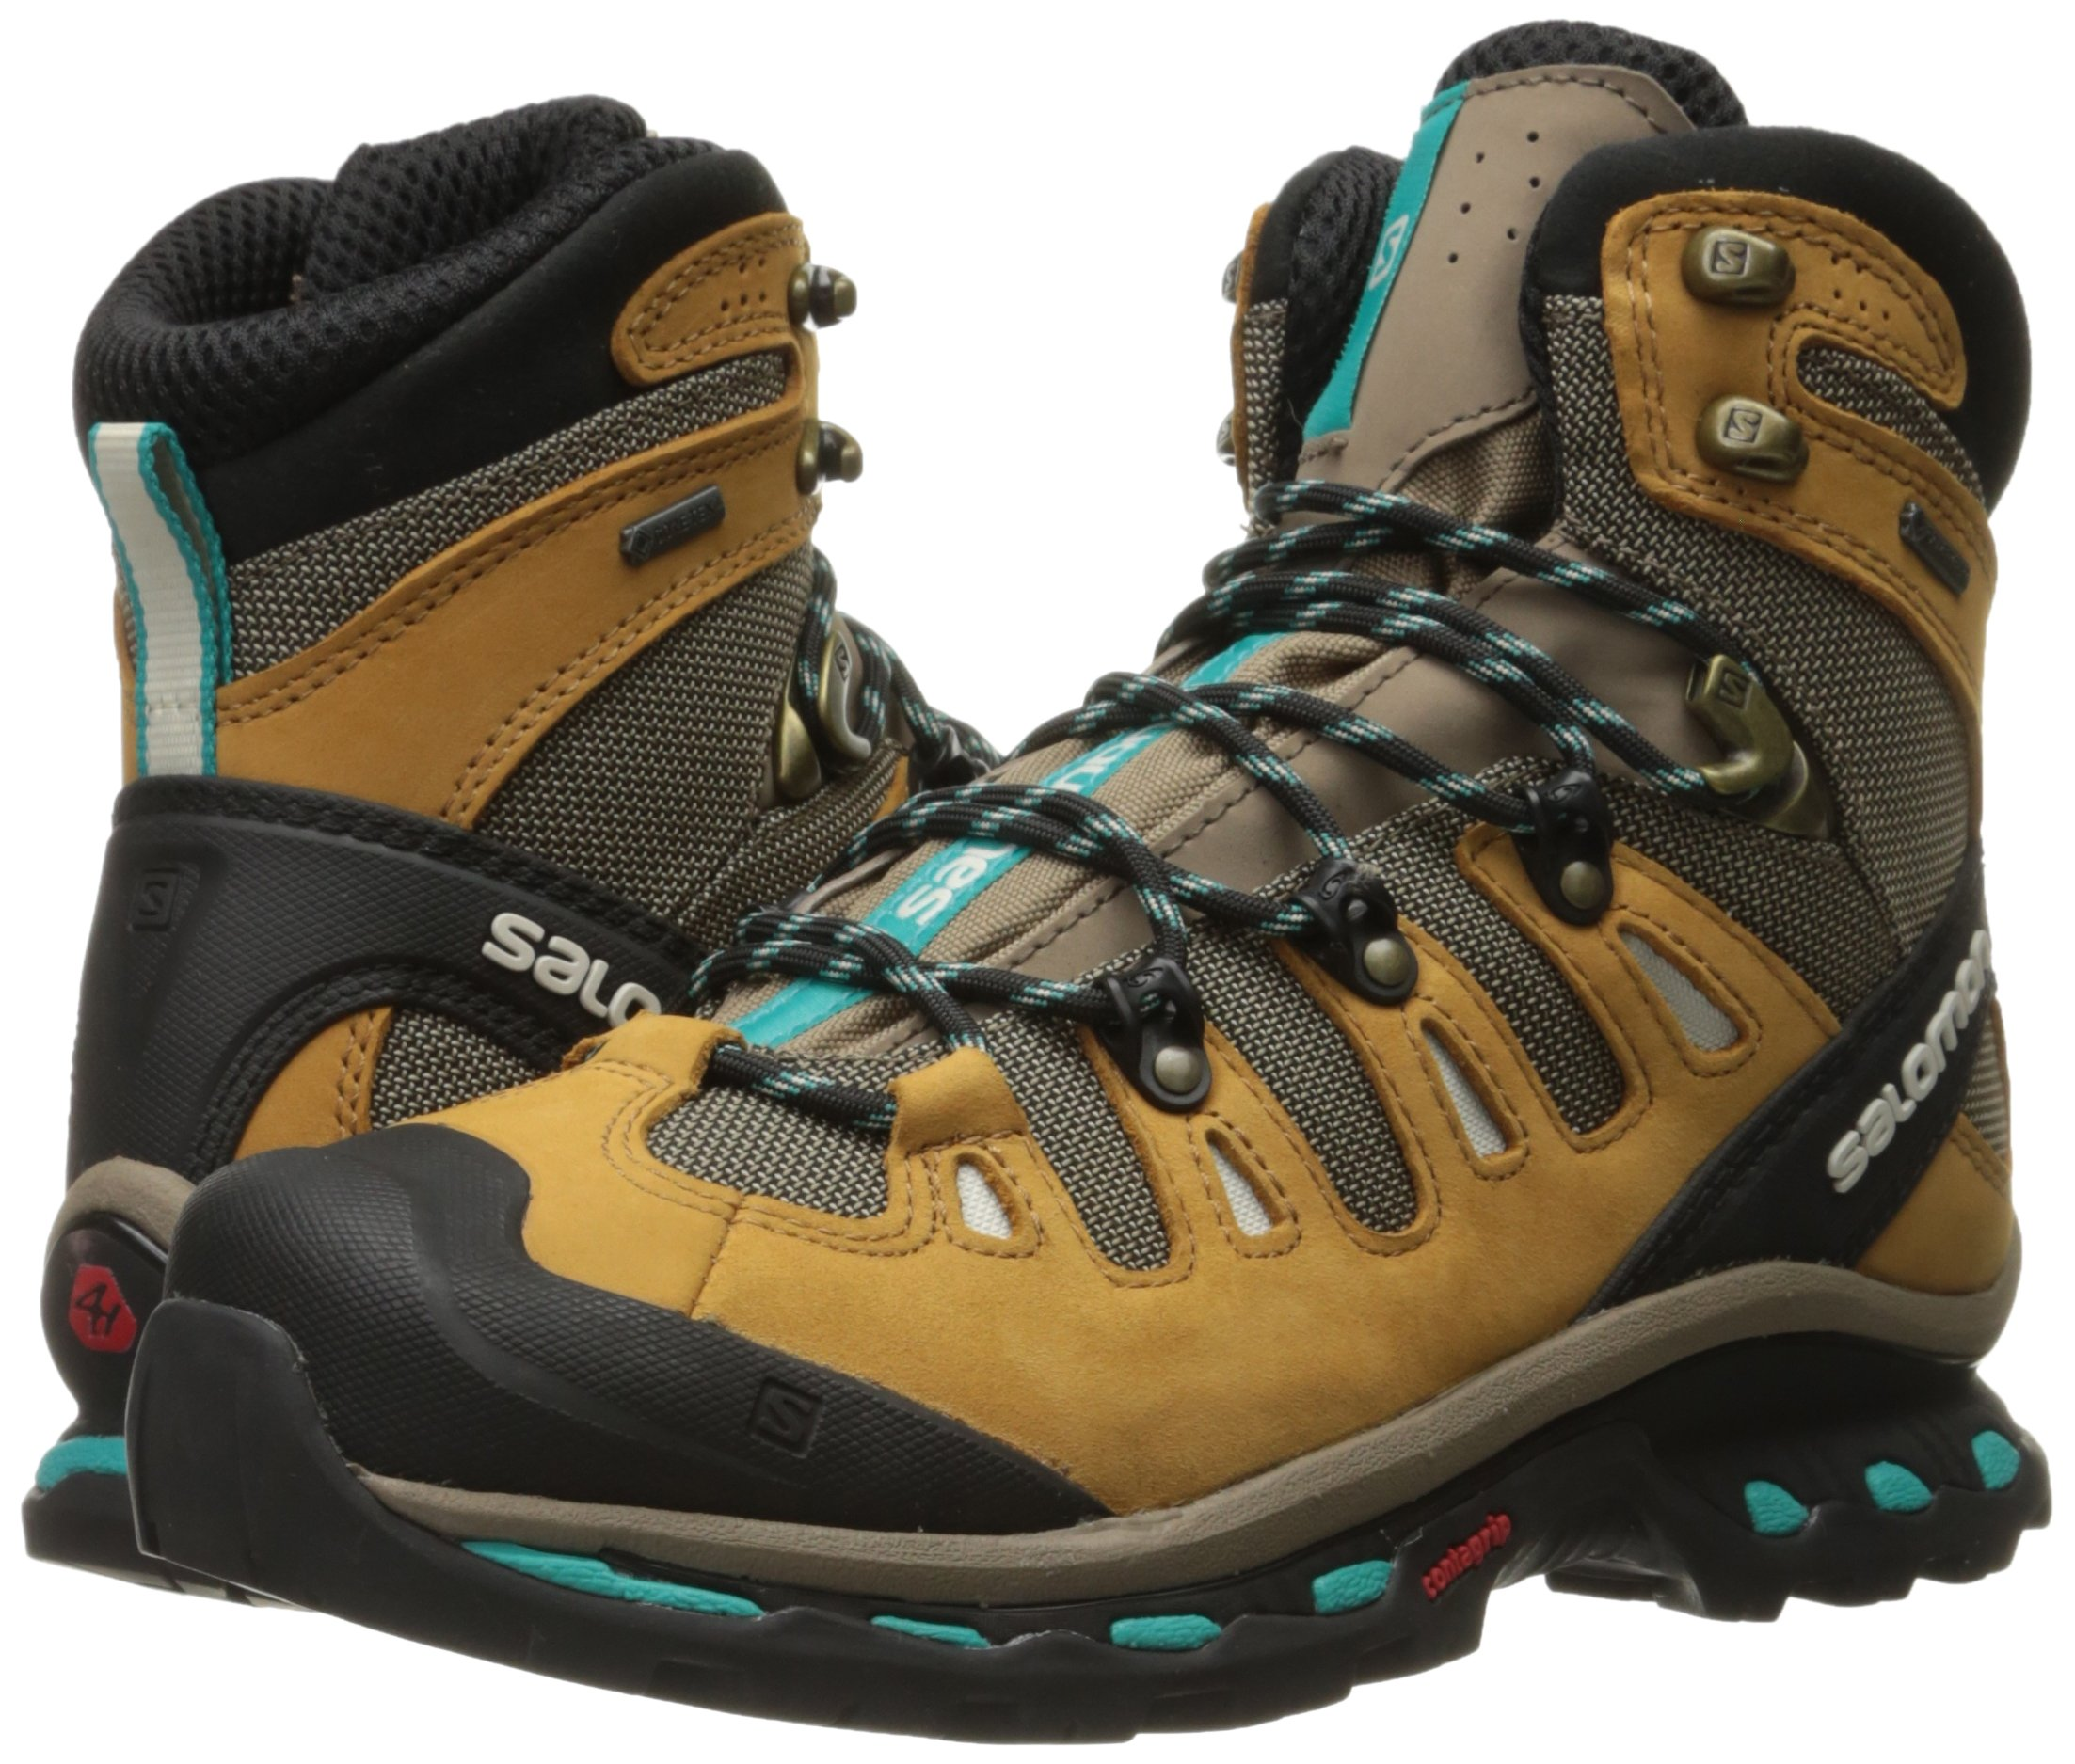 Salomon Women's Quest 4d 2 Gtx W Backpacking Boot, Shrew/Camel Gold Leather/Teal Blue Fabric, 8.5 M US by Salomon (Image #6)